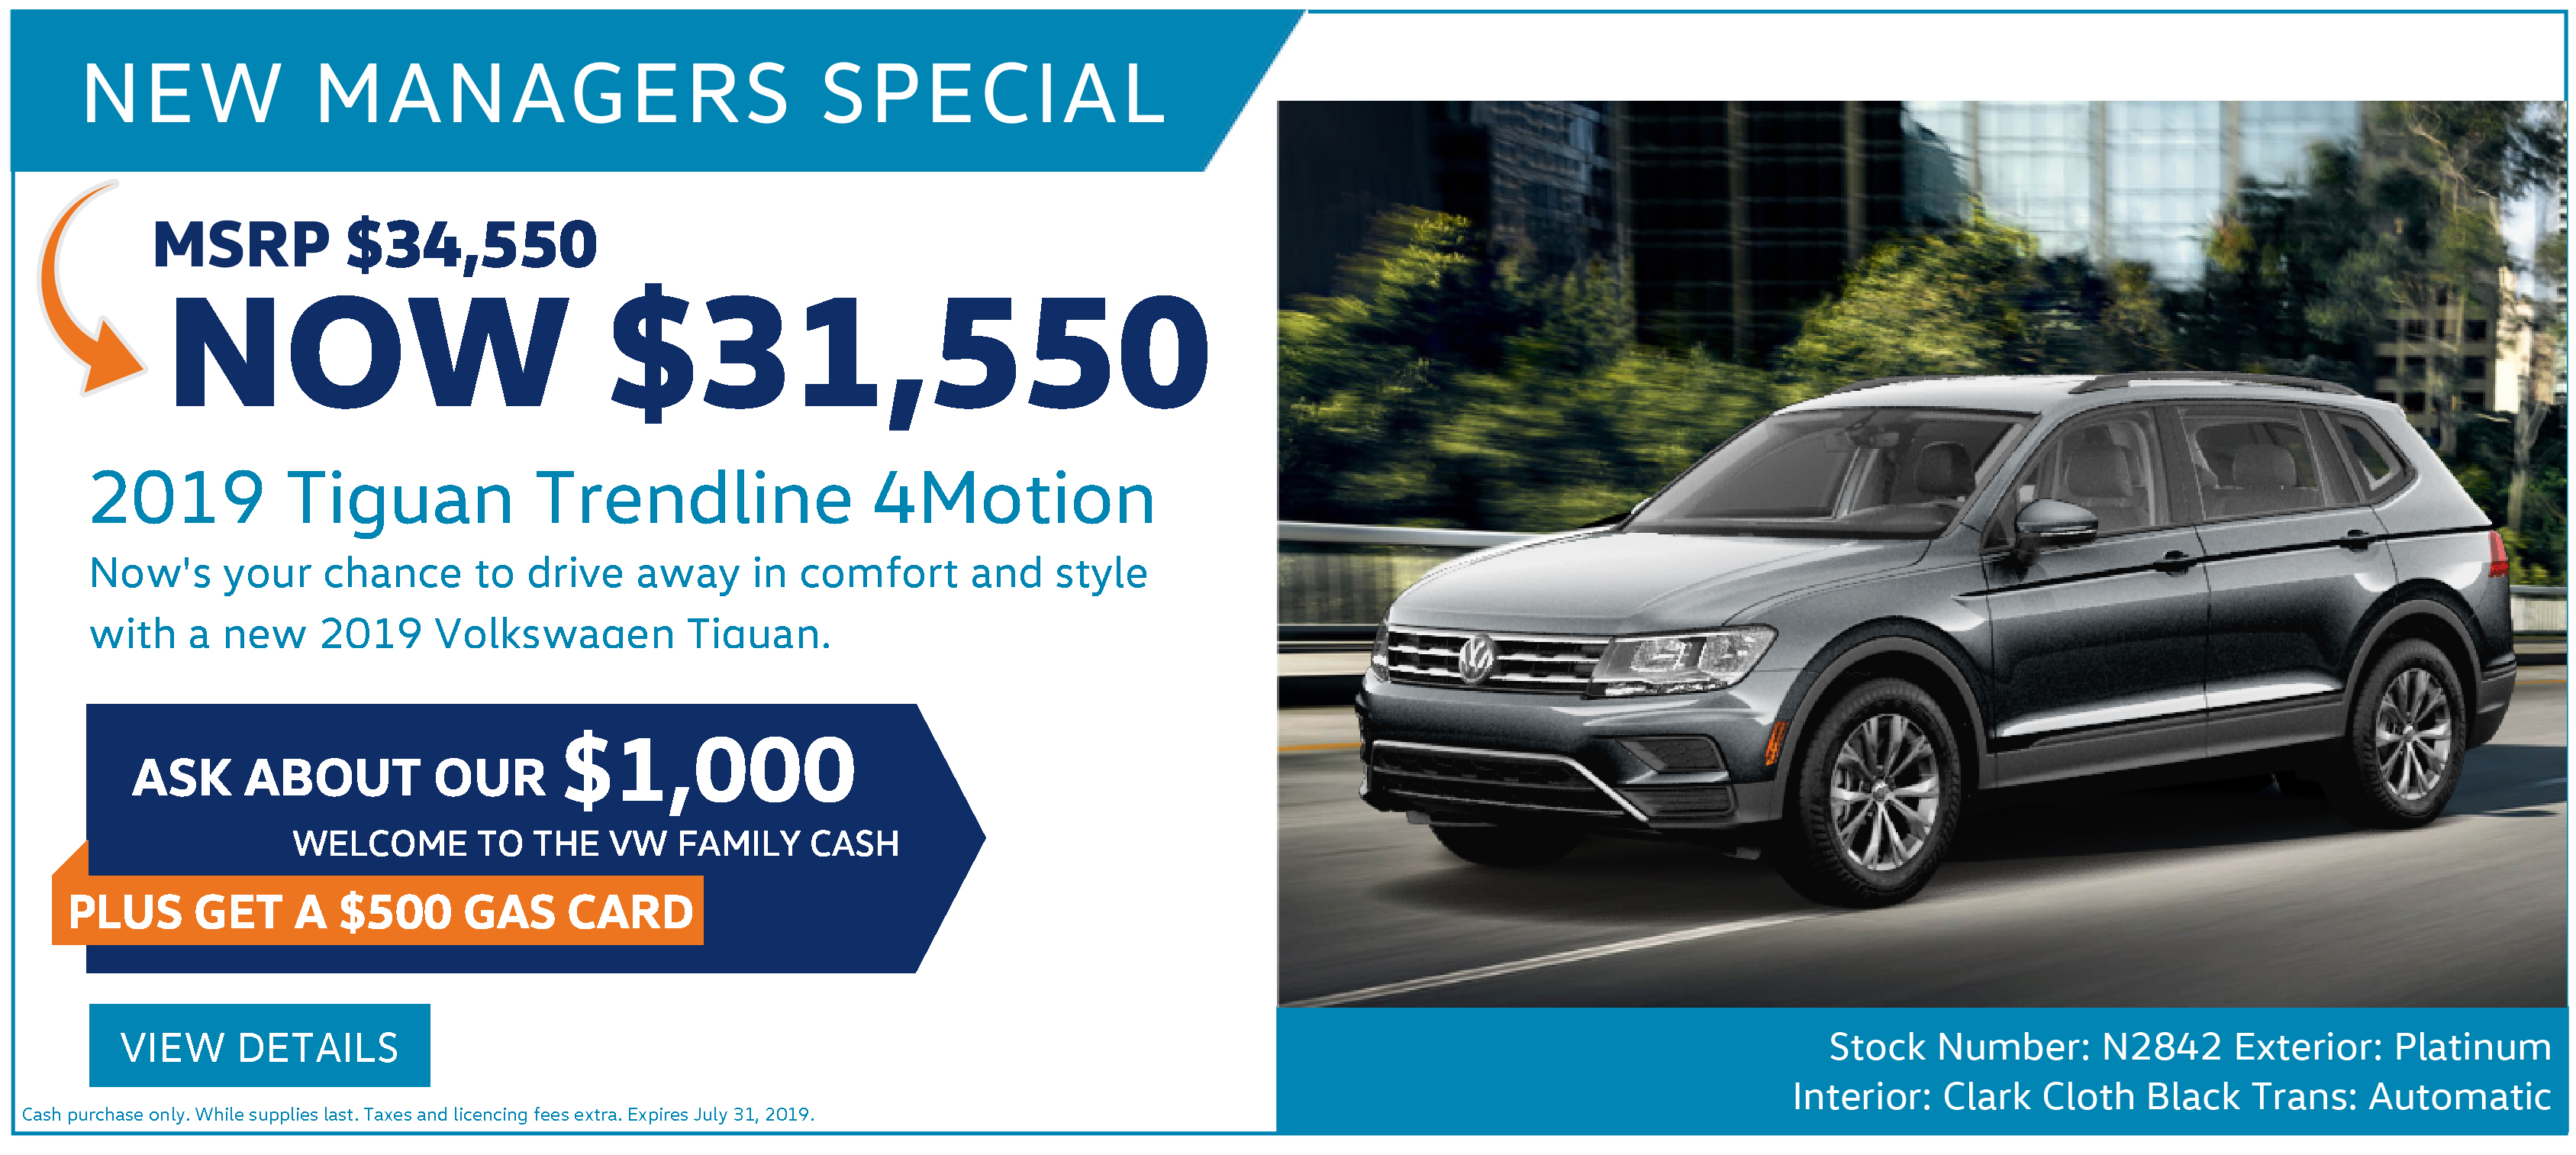 New Managers Special July Volkswagen Tiguan Ottawa